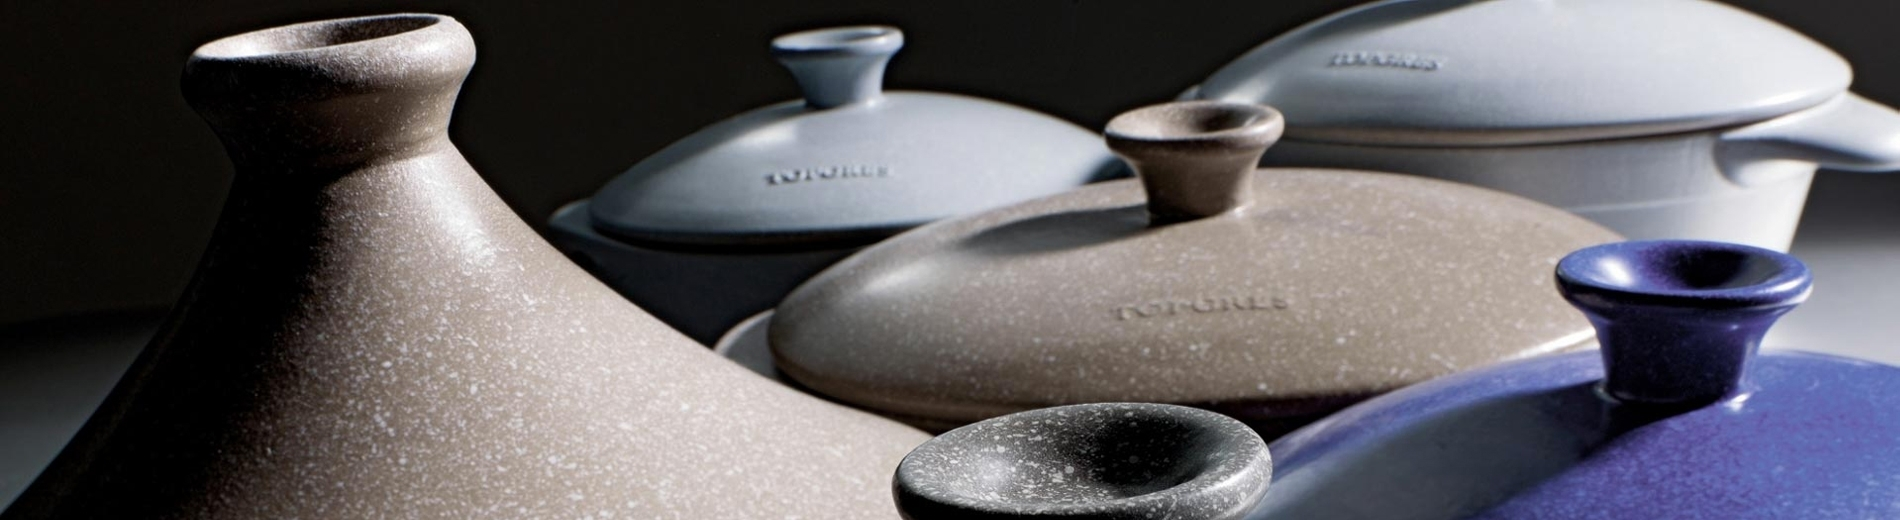 Pots and baking dishes